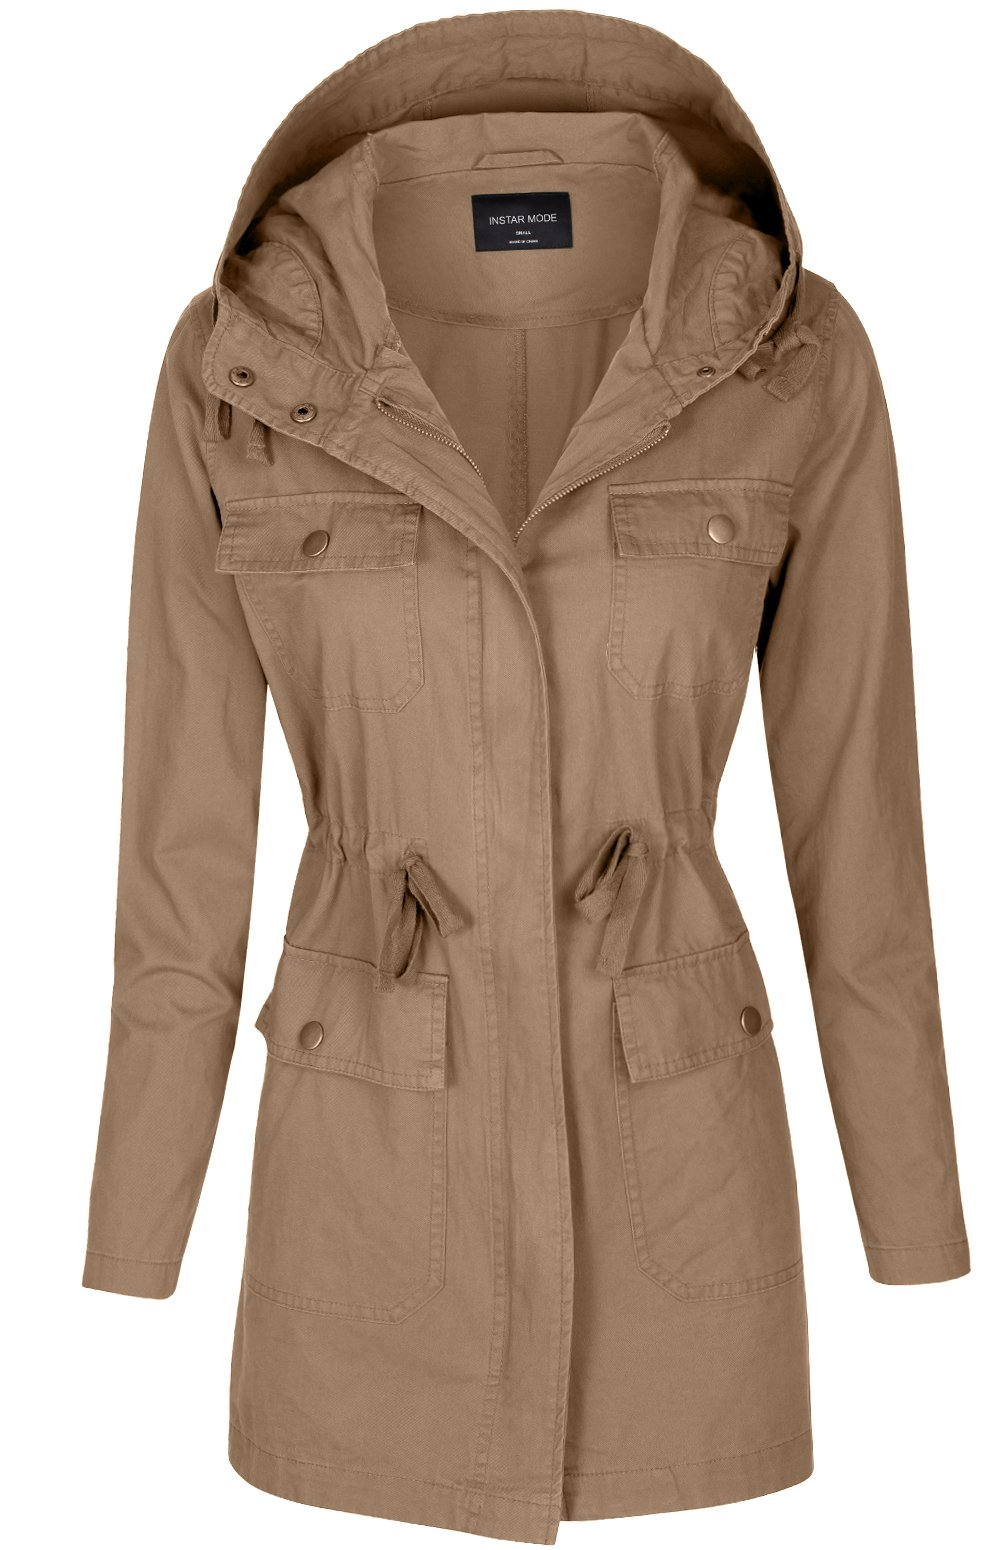 Instar Mode Women's Anorak Safari Hoodie Jacket up to Plus Size (JK19012 Khaki, Medium)